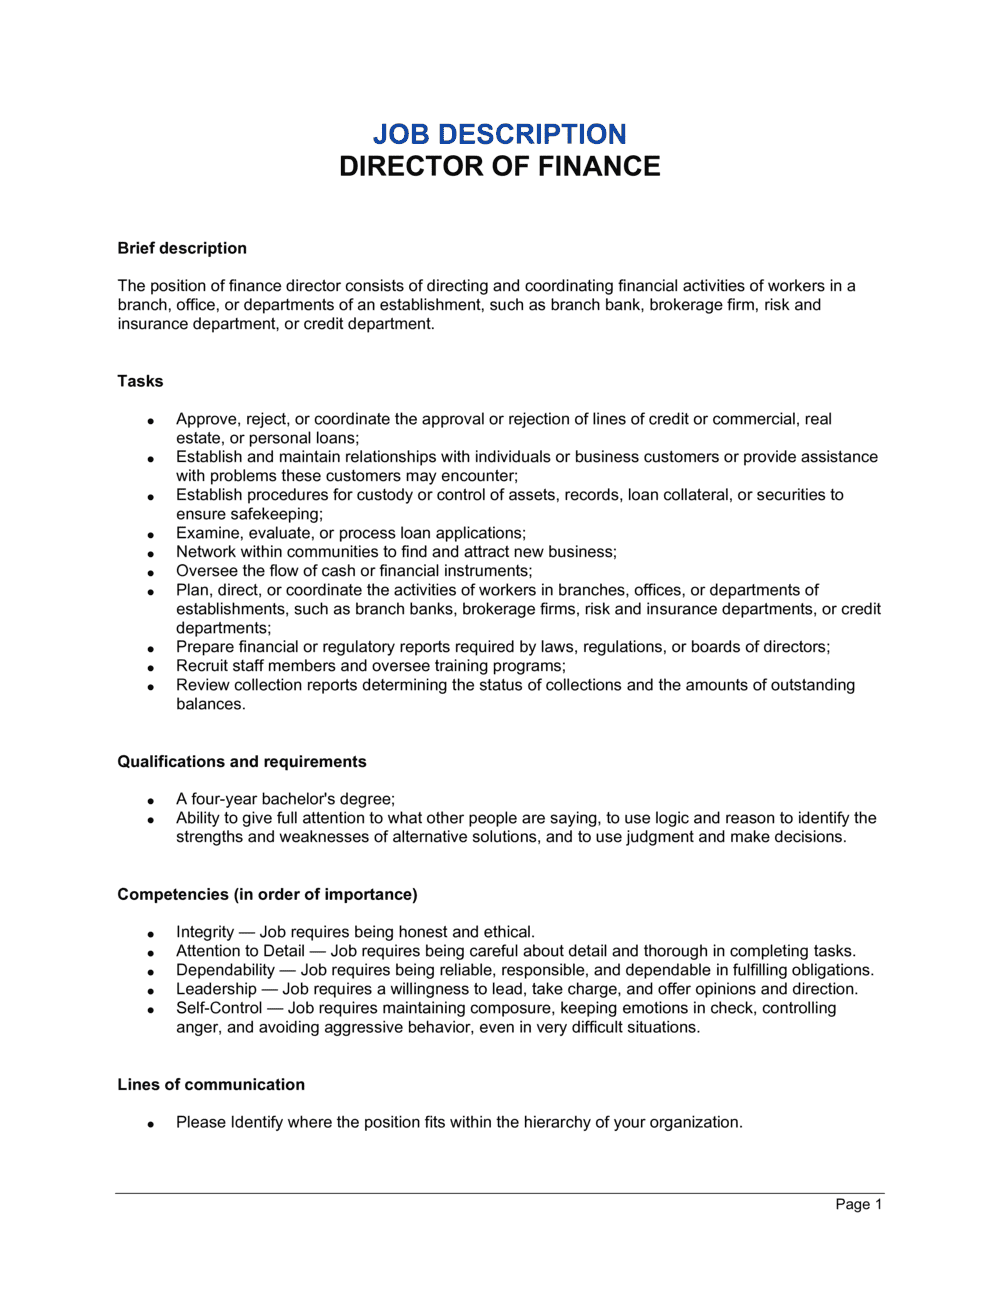 Business-in-a-Box's Director of Finance Job Description Template